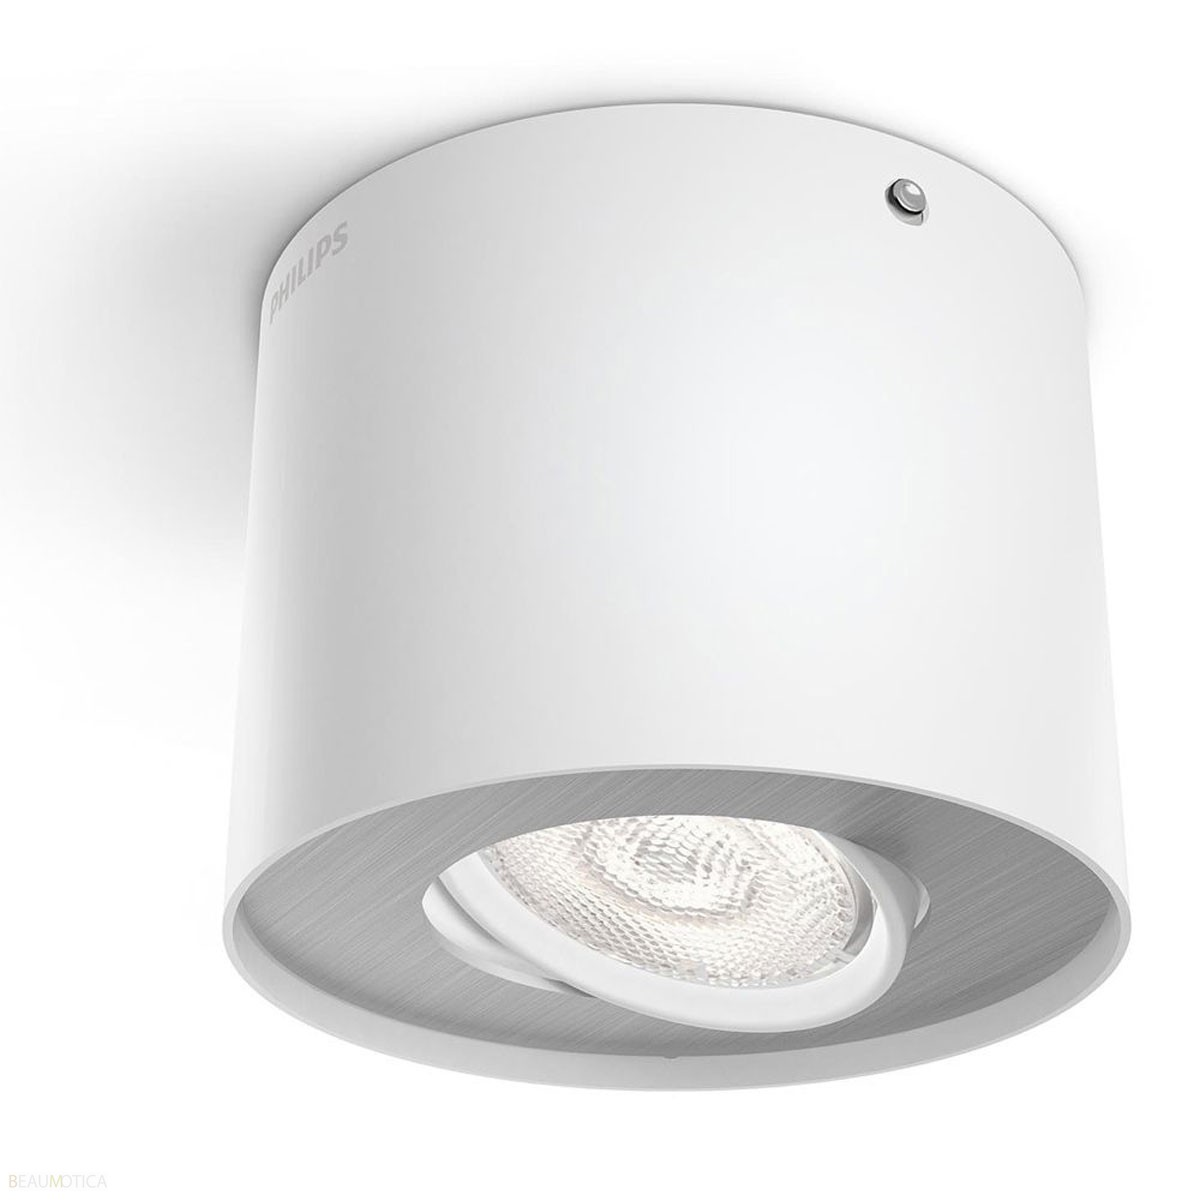 Bekend Philips myLiving Phase plafondspot (wit, 1 spot) AC17